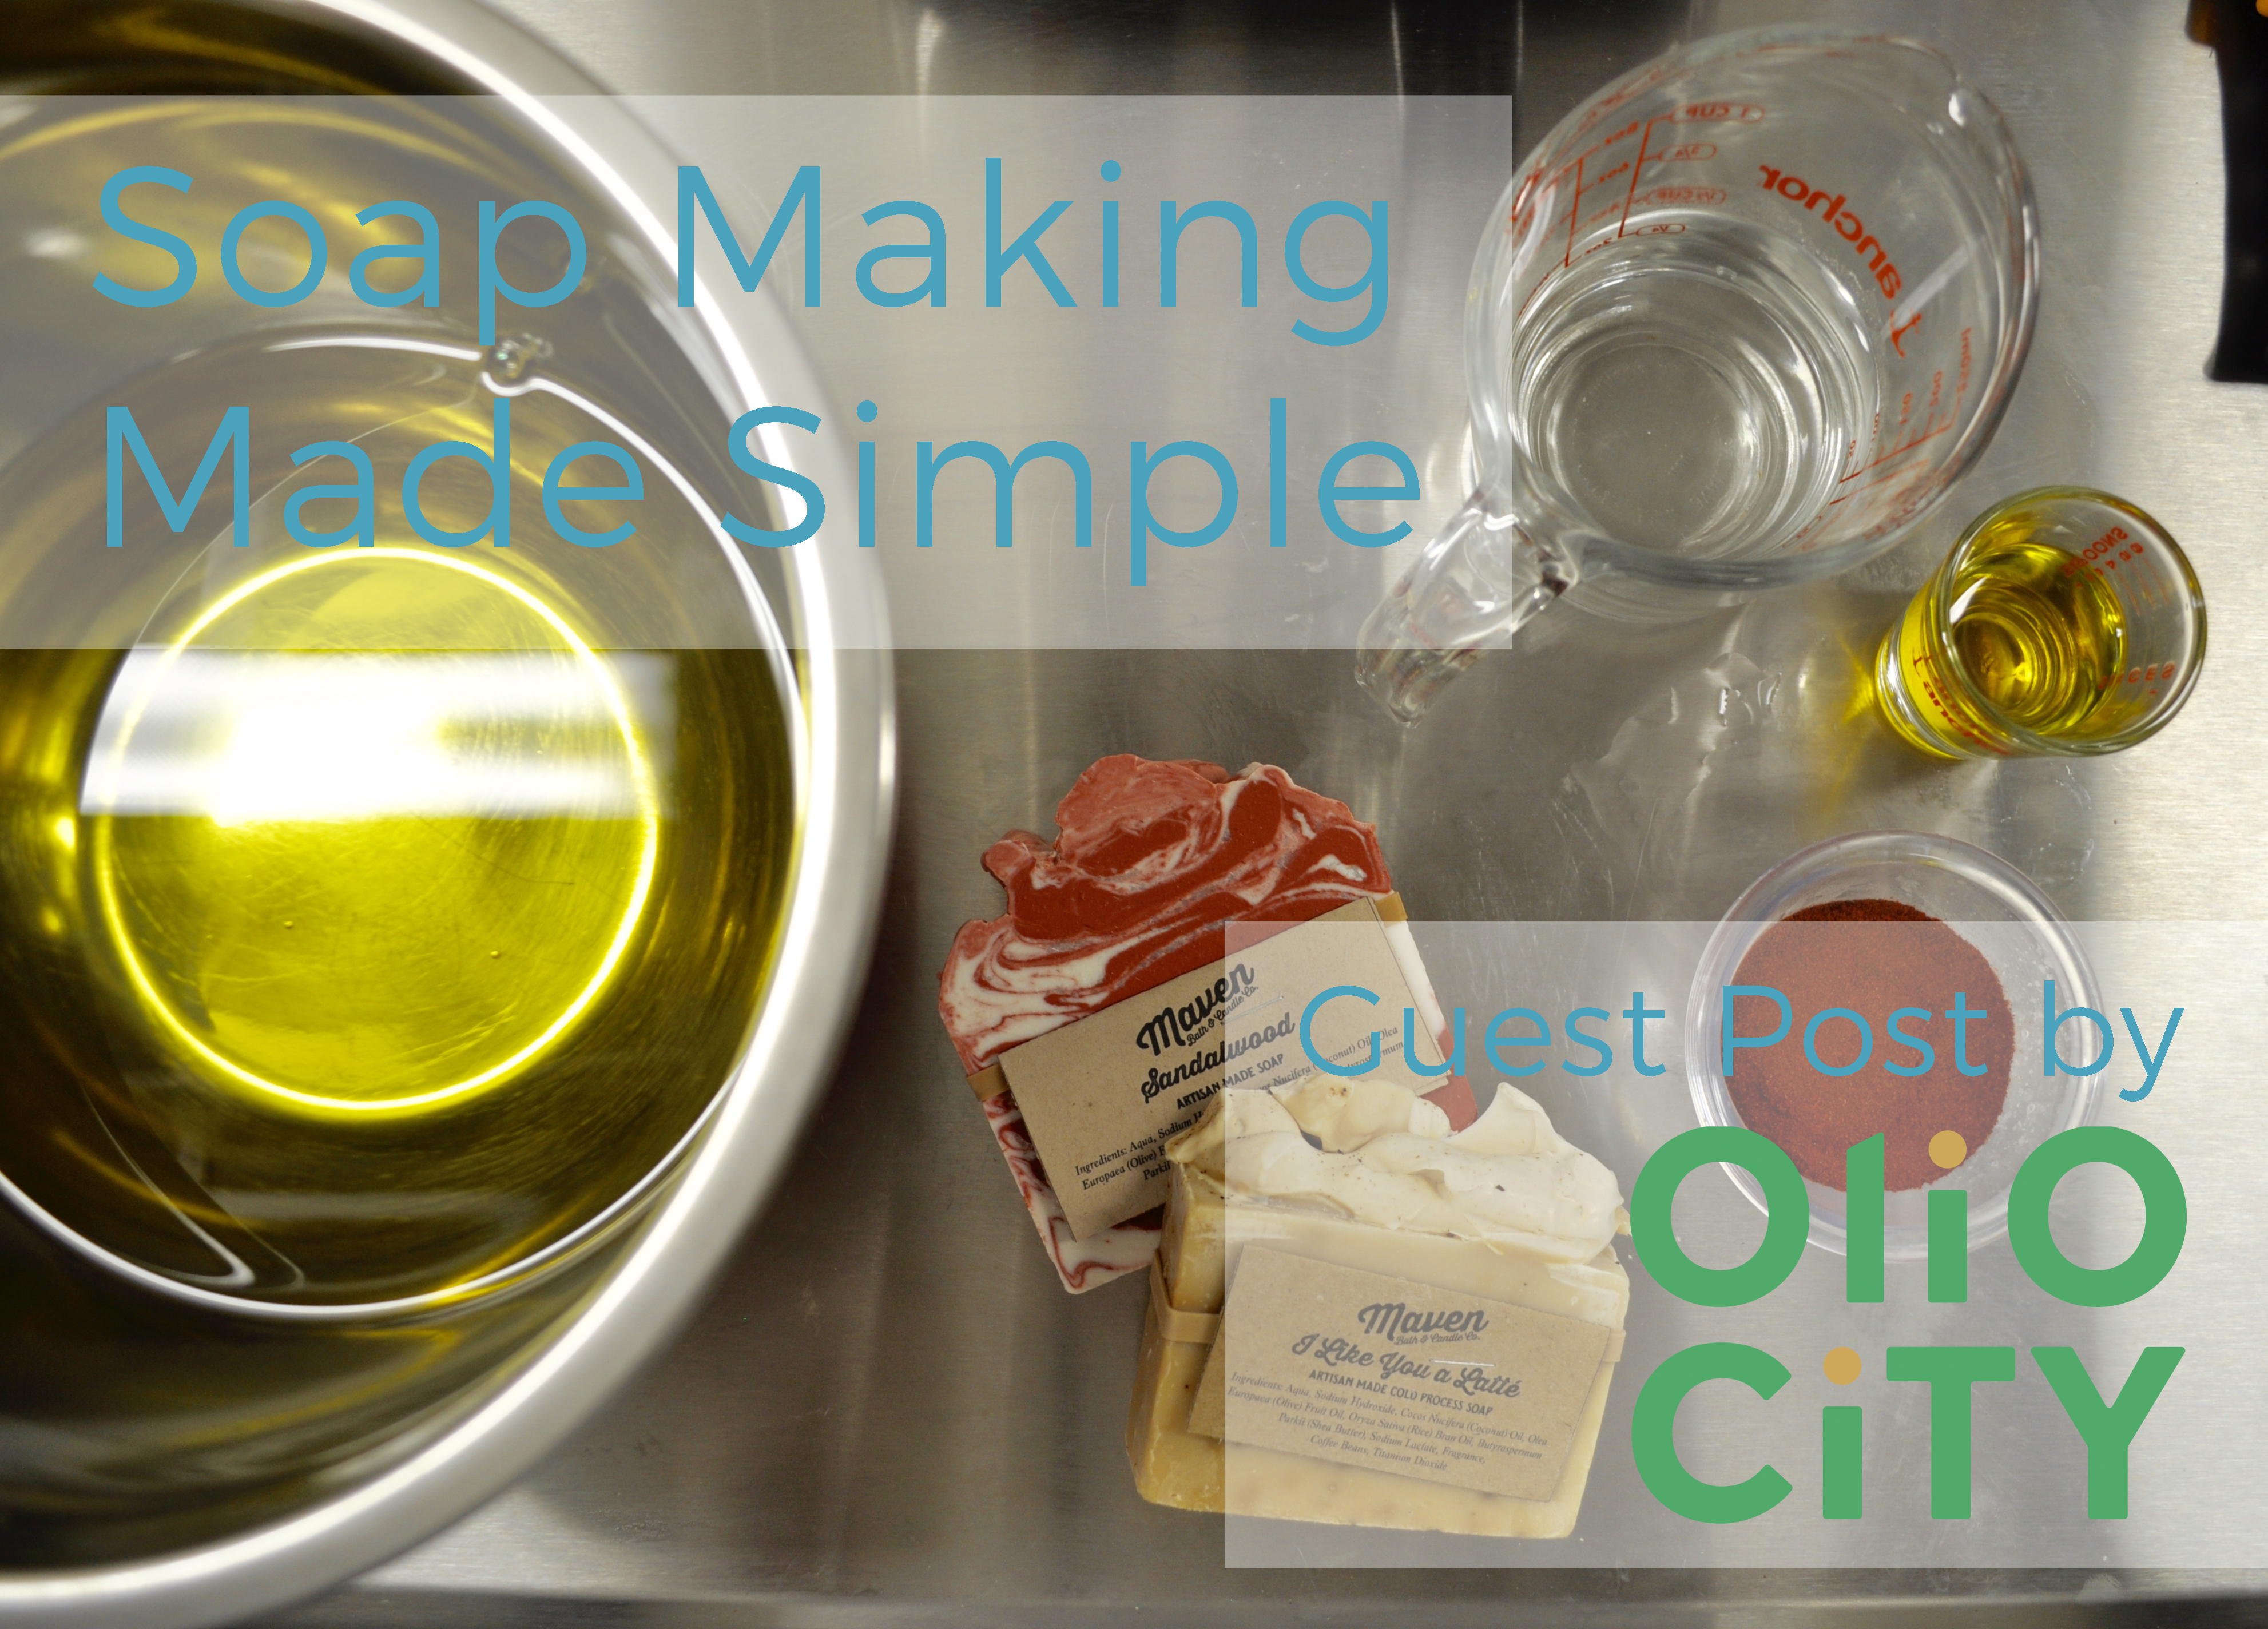 Soap Making Made Simple: Guest Post by Olio City